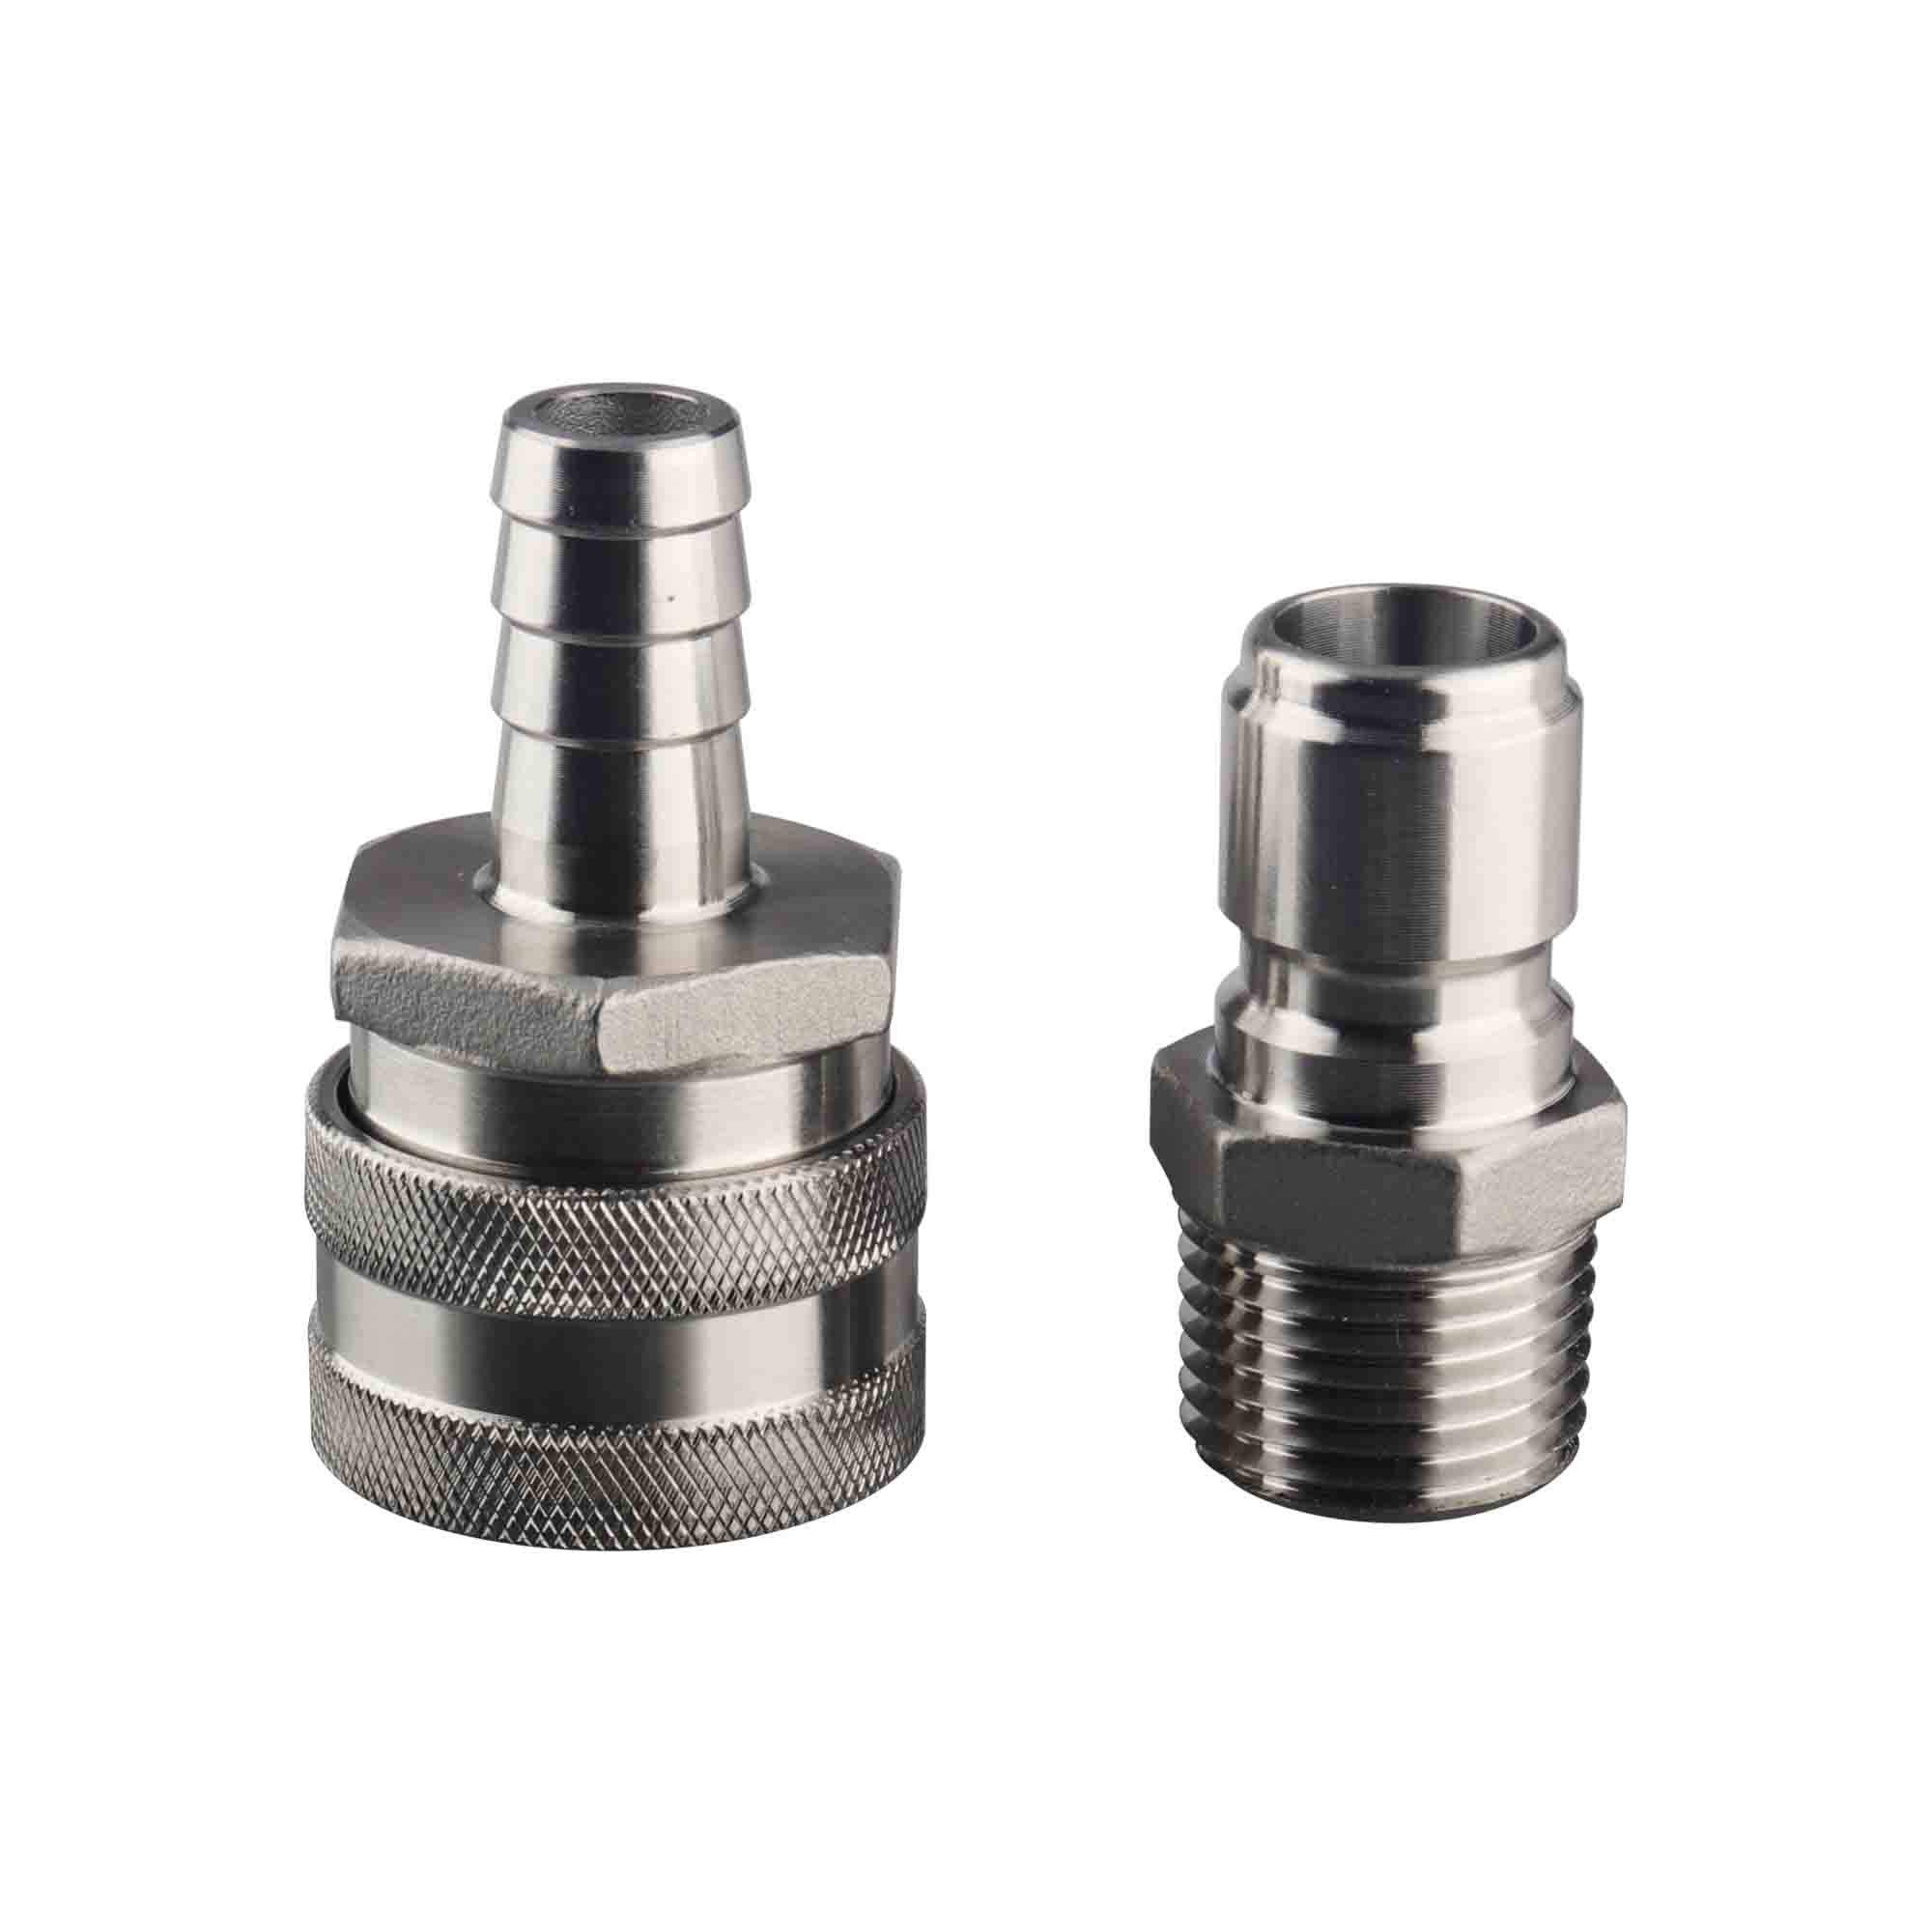 OneBom Quick Disconnect Set, Beer Brewing Connector Kit Stainless Steel, Easy Connect & Clean, No Leak for Ball Valve & Mash Tun (1/2'' MPT Male + Barb Female)